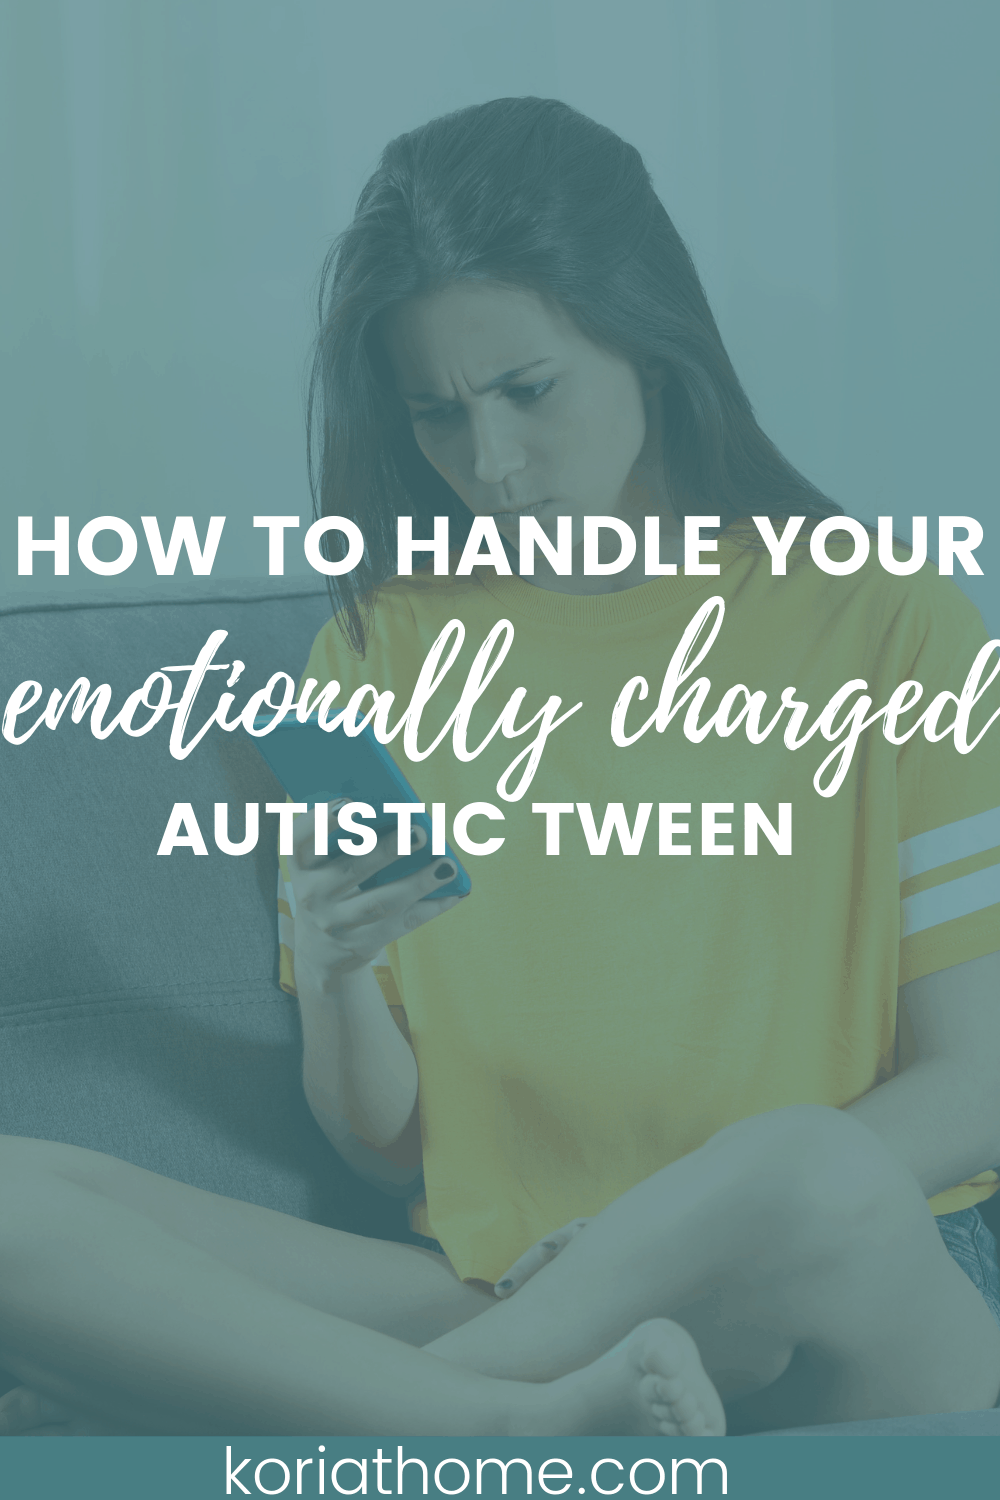 How to Handle Your Emotionally Charged Tween with Autism 1